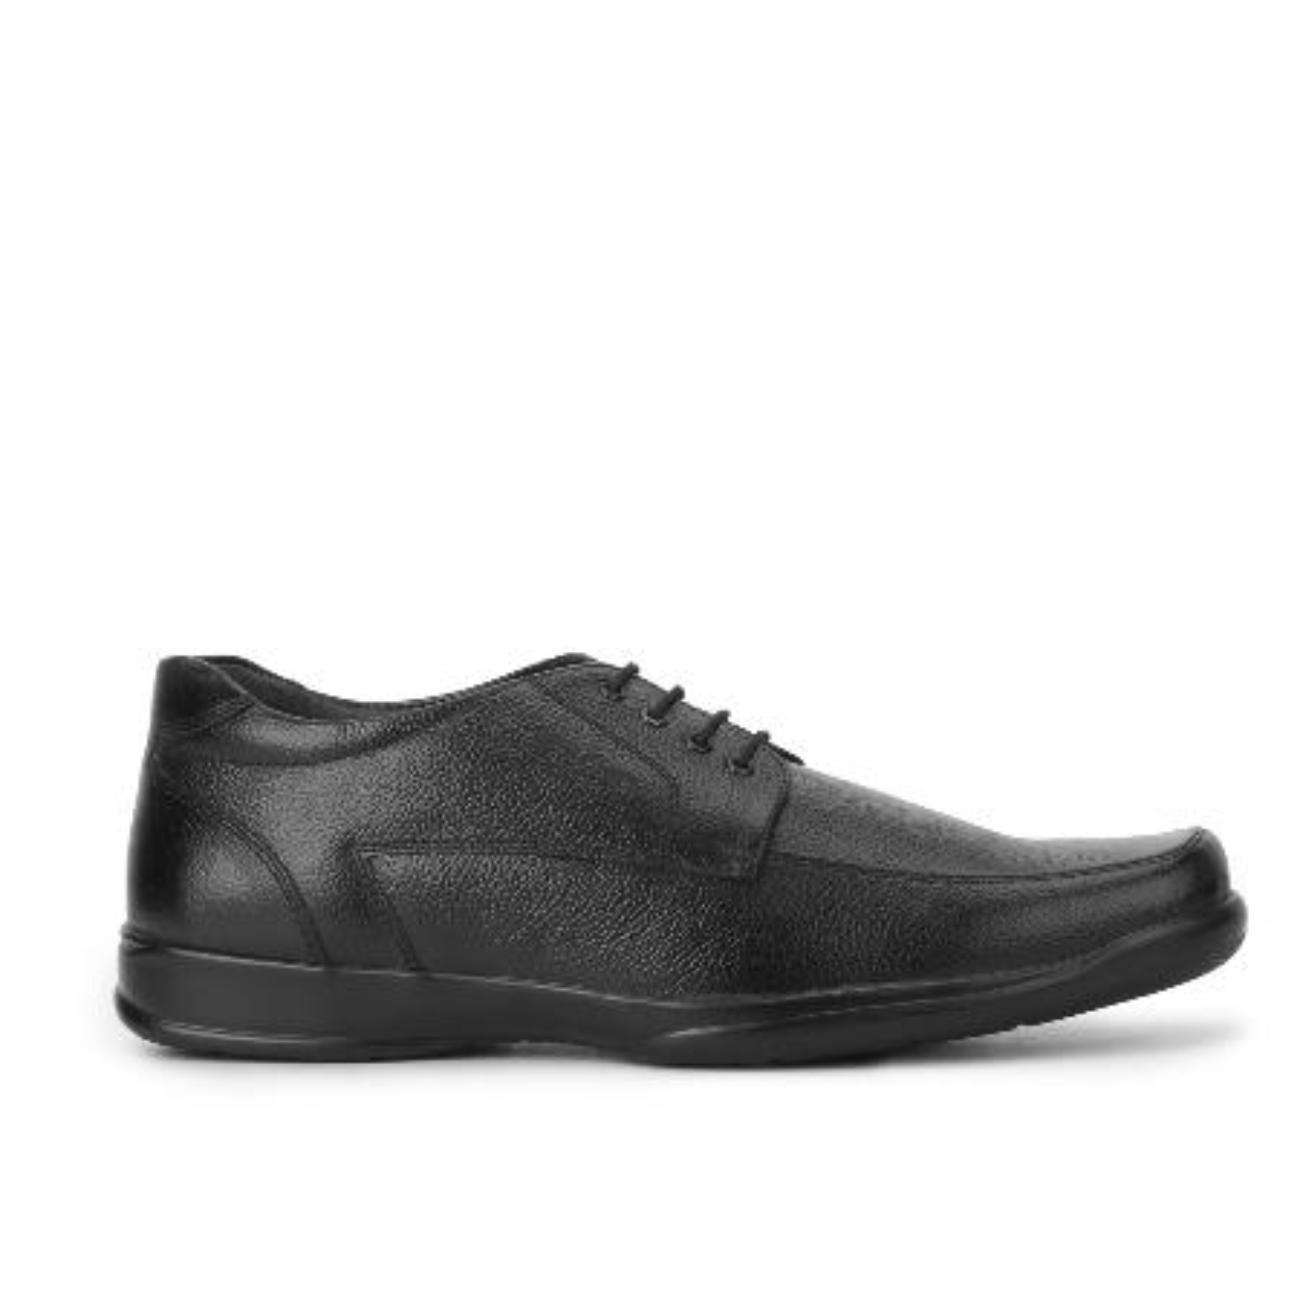 black formal shoes side view 1